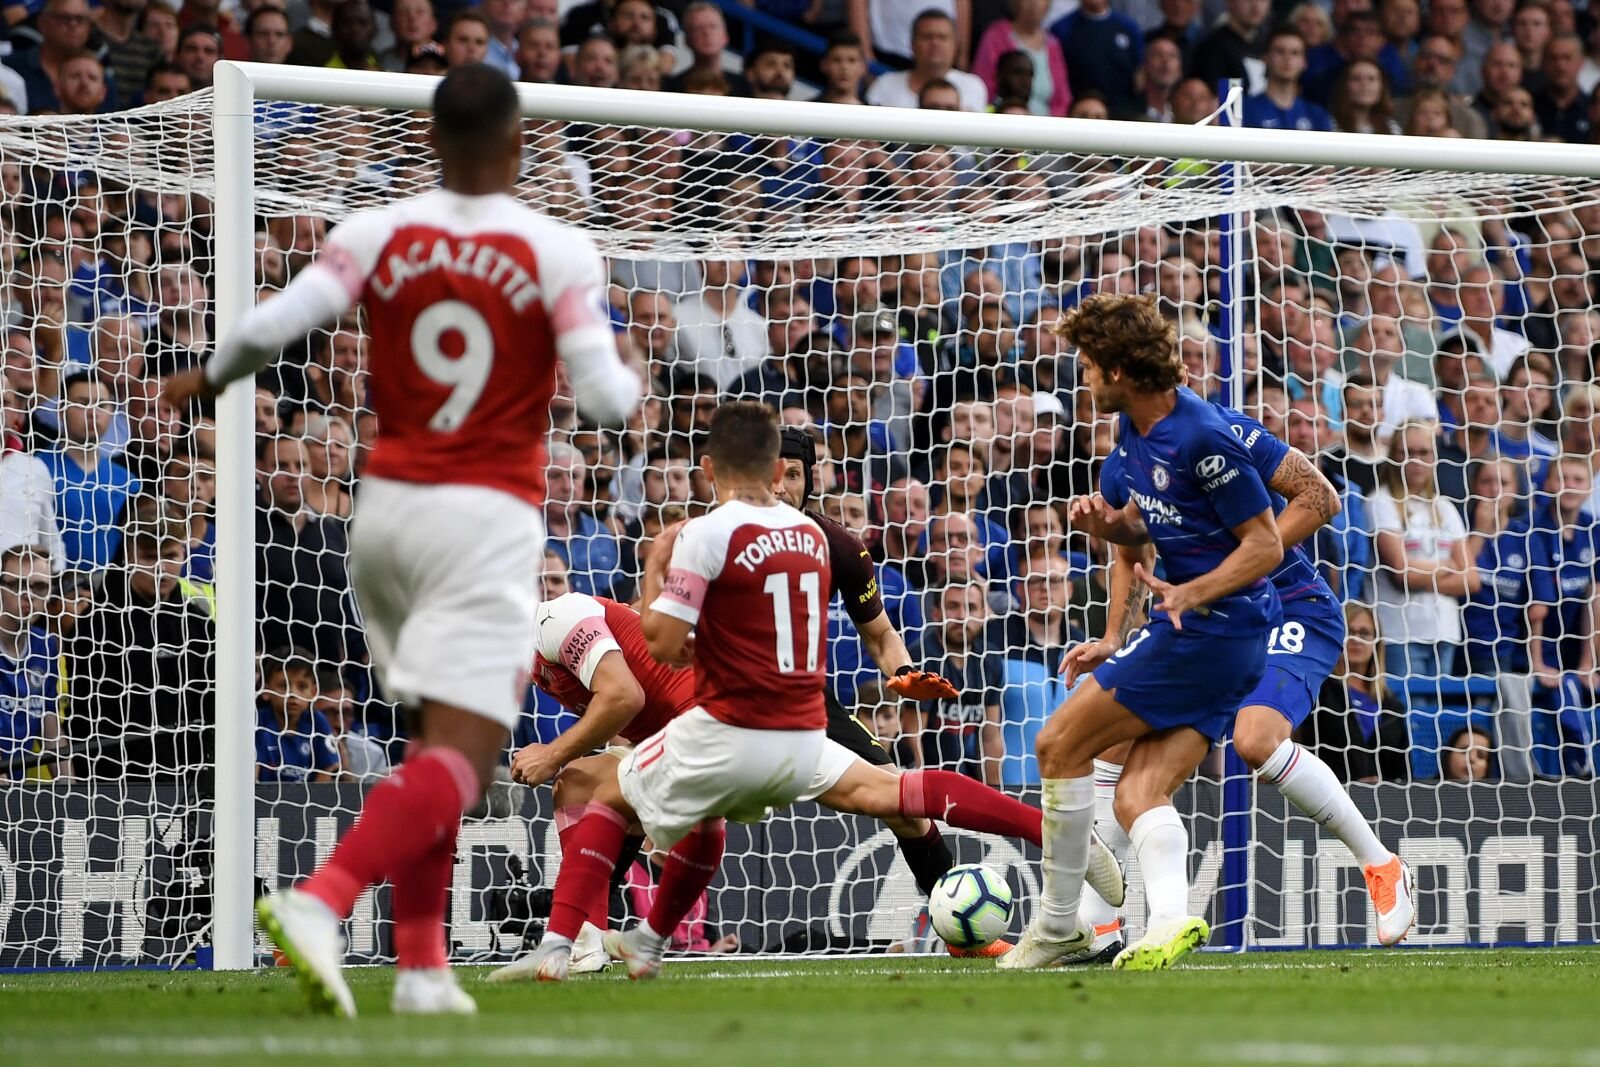 Chelsea's most important goal? Marcos Alonso sealed UCL place in week two